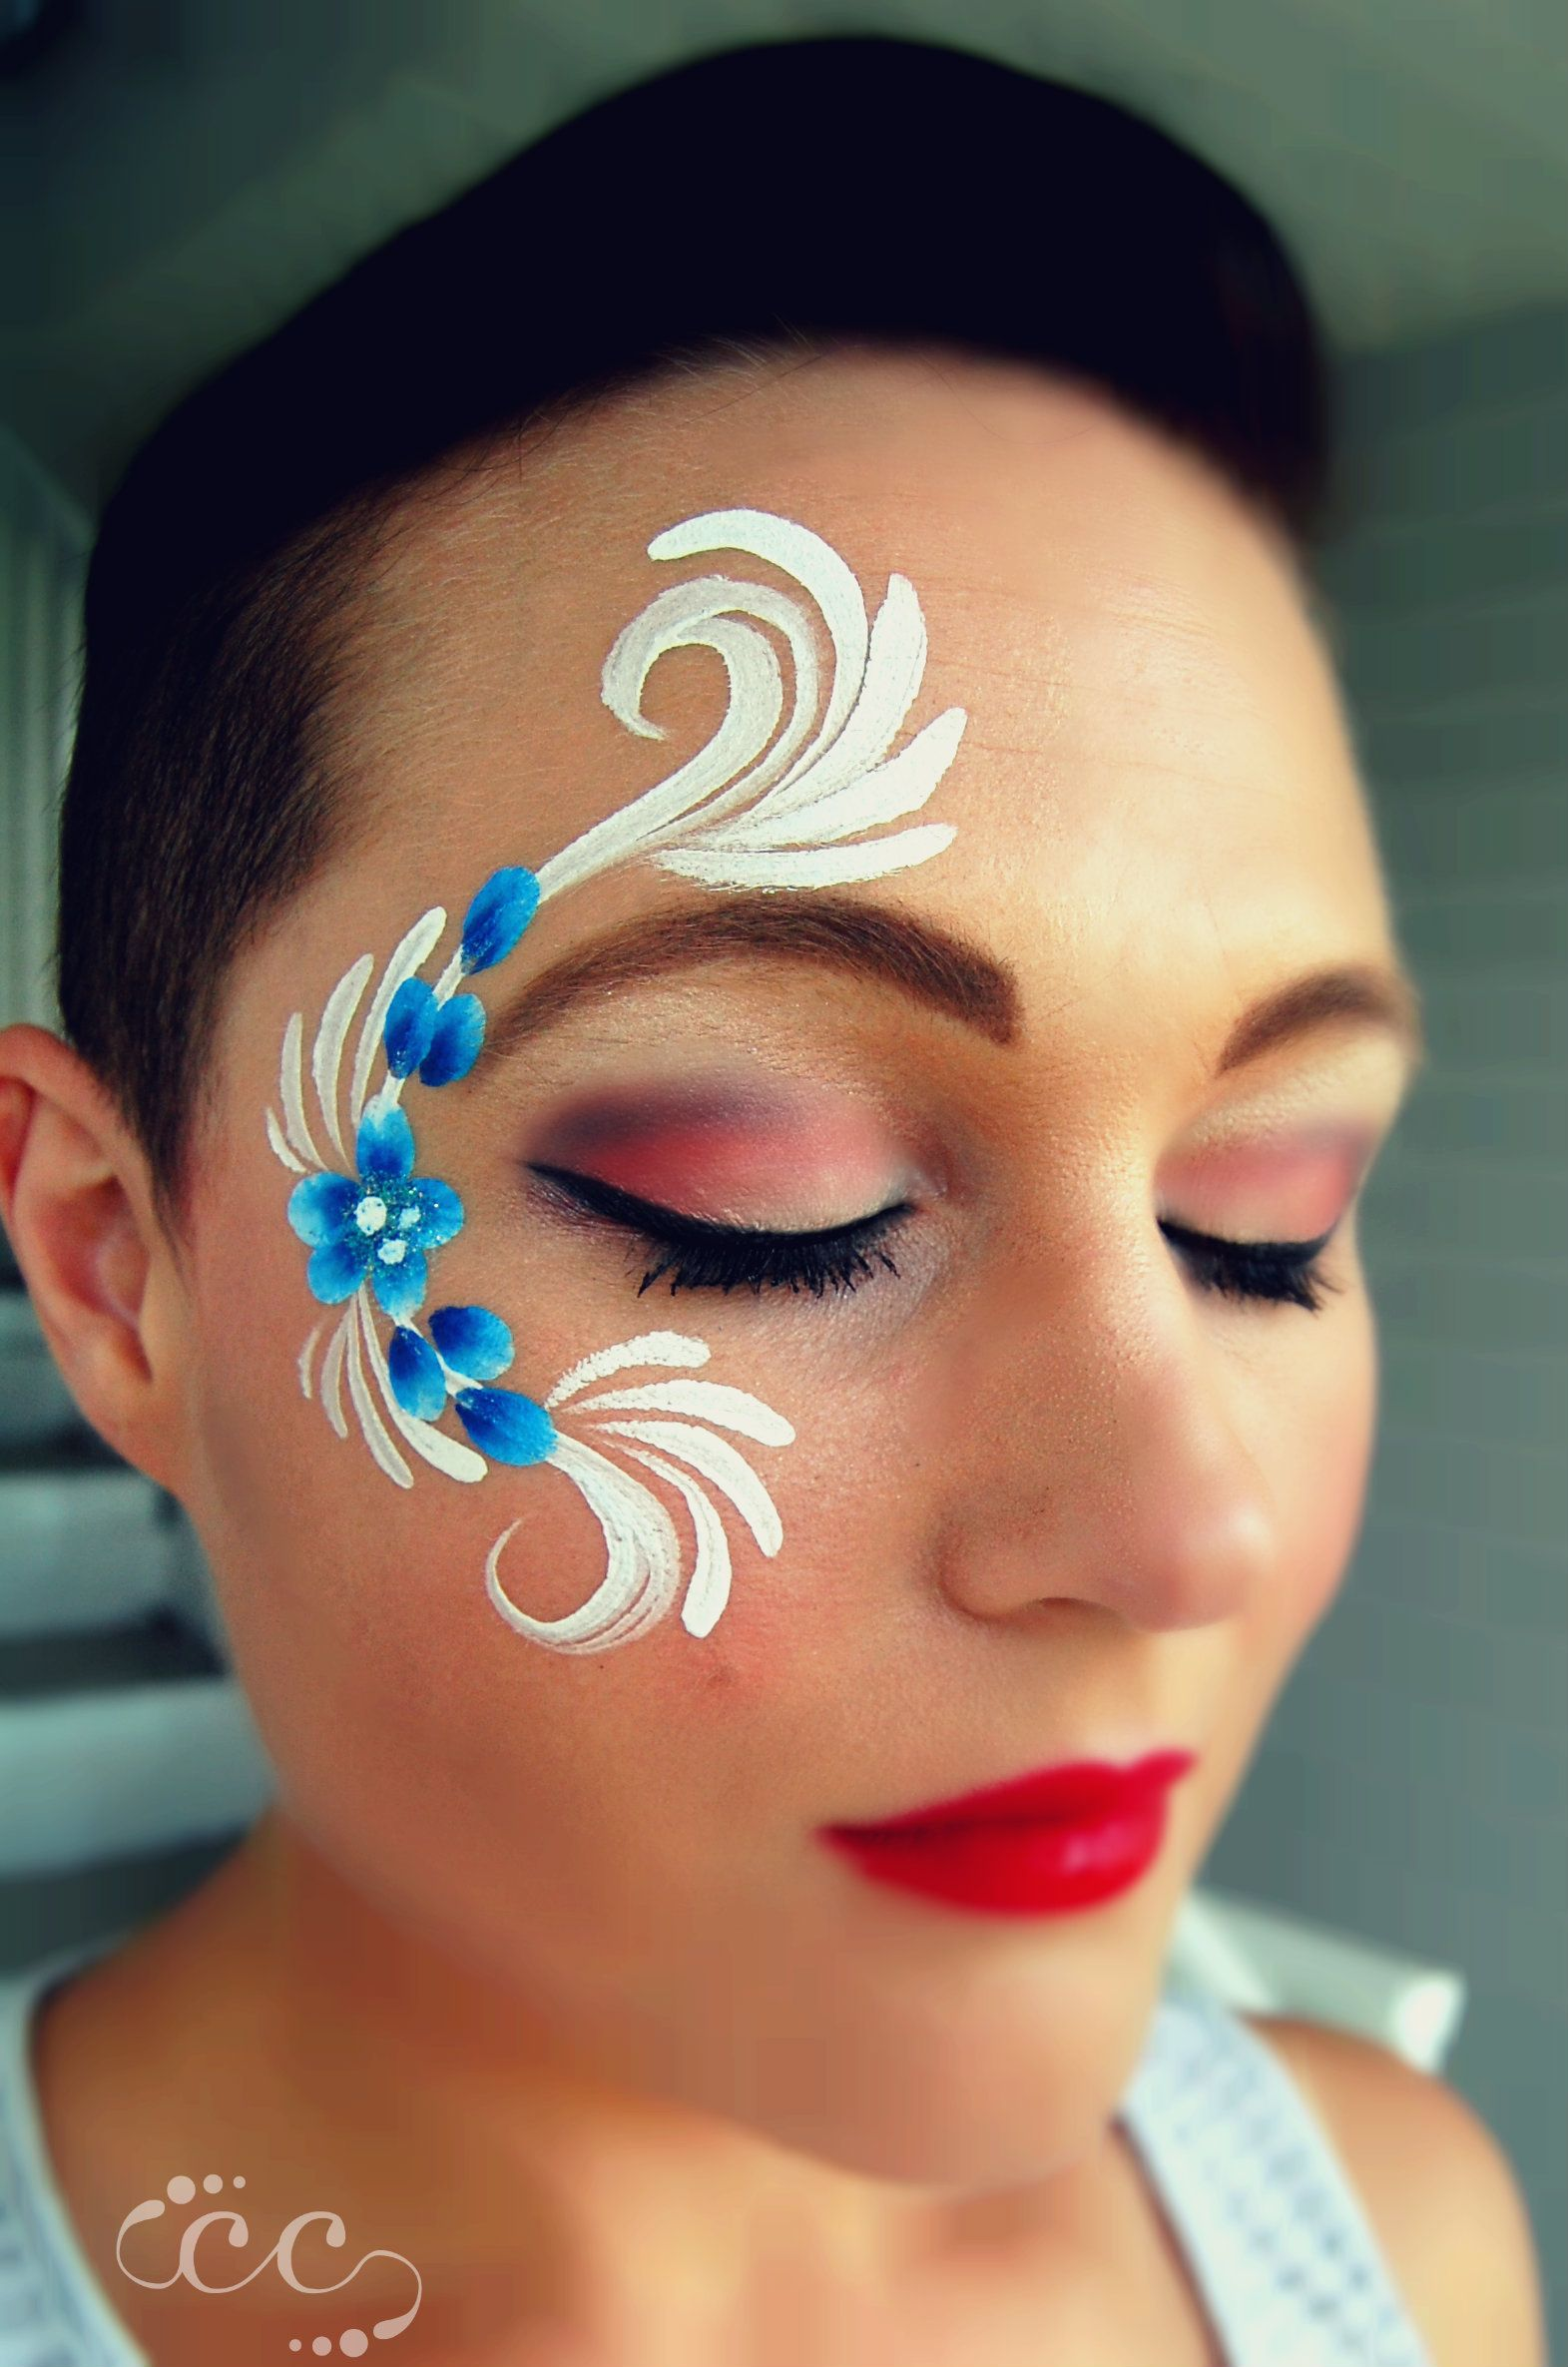 Pin On Chubby Cheeks Face And Body Art Faces